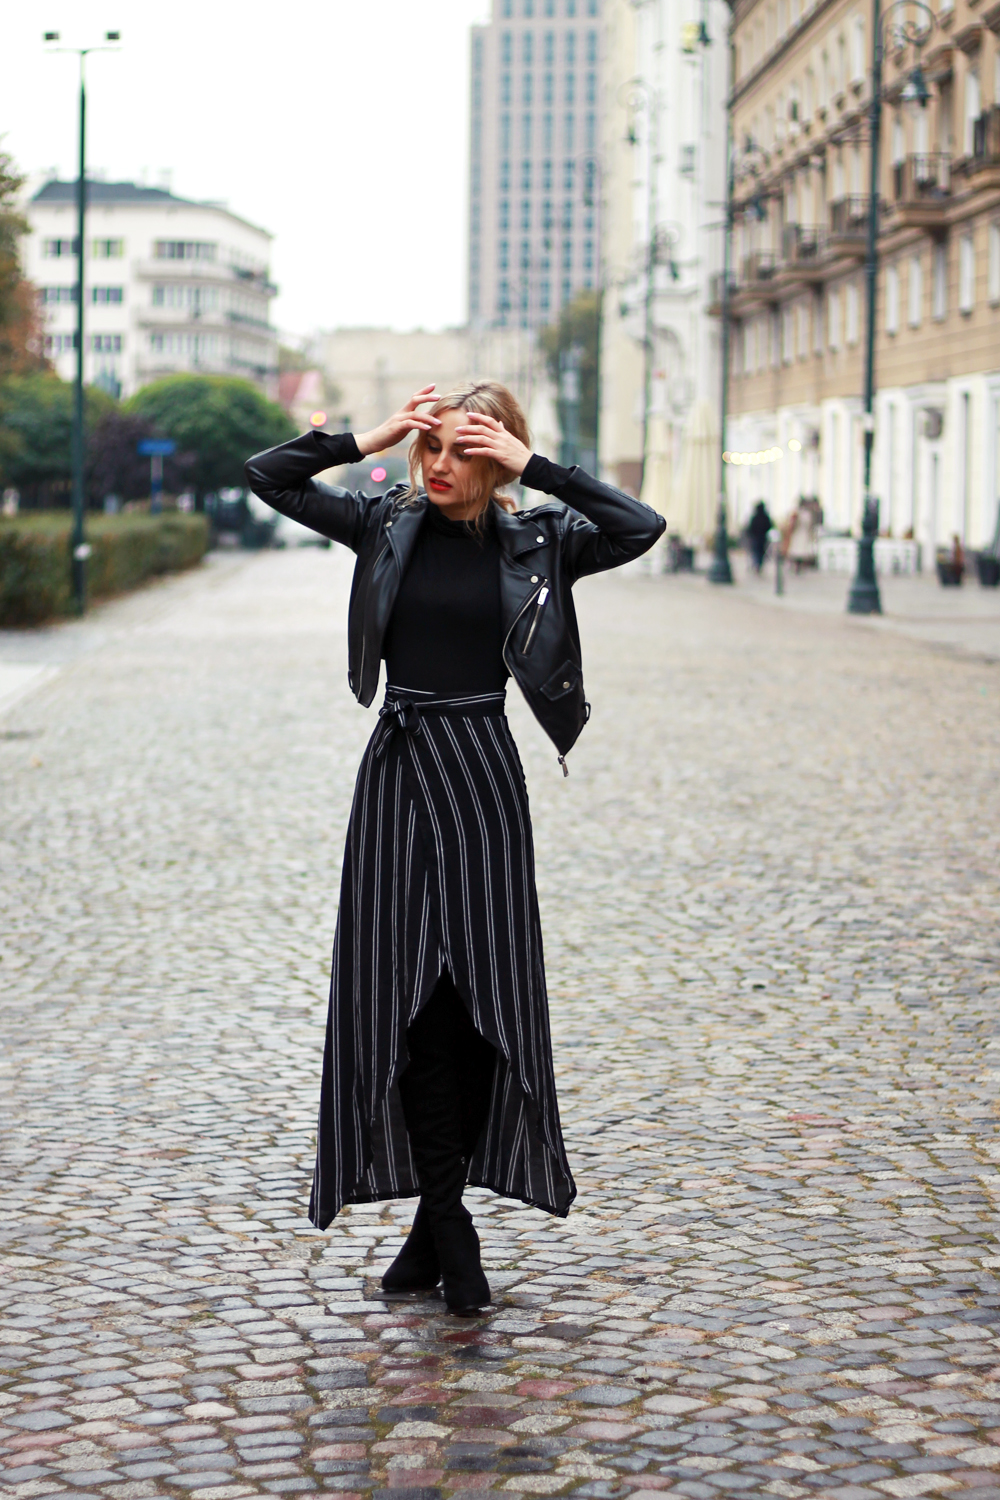 black-outfit-clothes-street-style-tumblr-girl-look-lookbook-fashion-ootd-what-to-wear-autumn-high-boots-zaful-midi-skirt